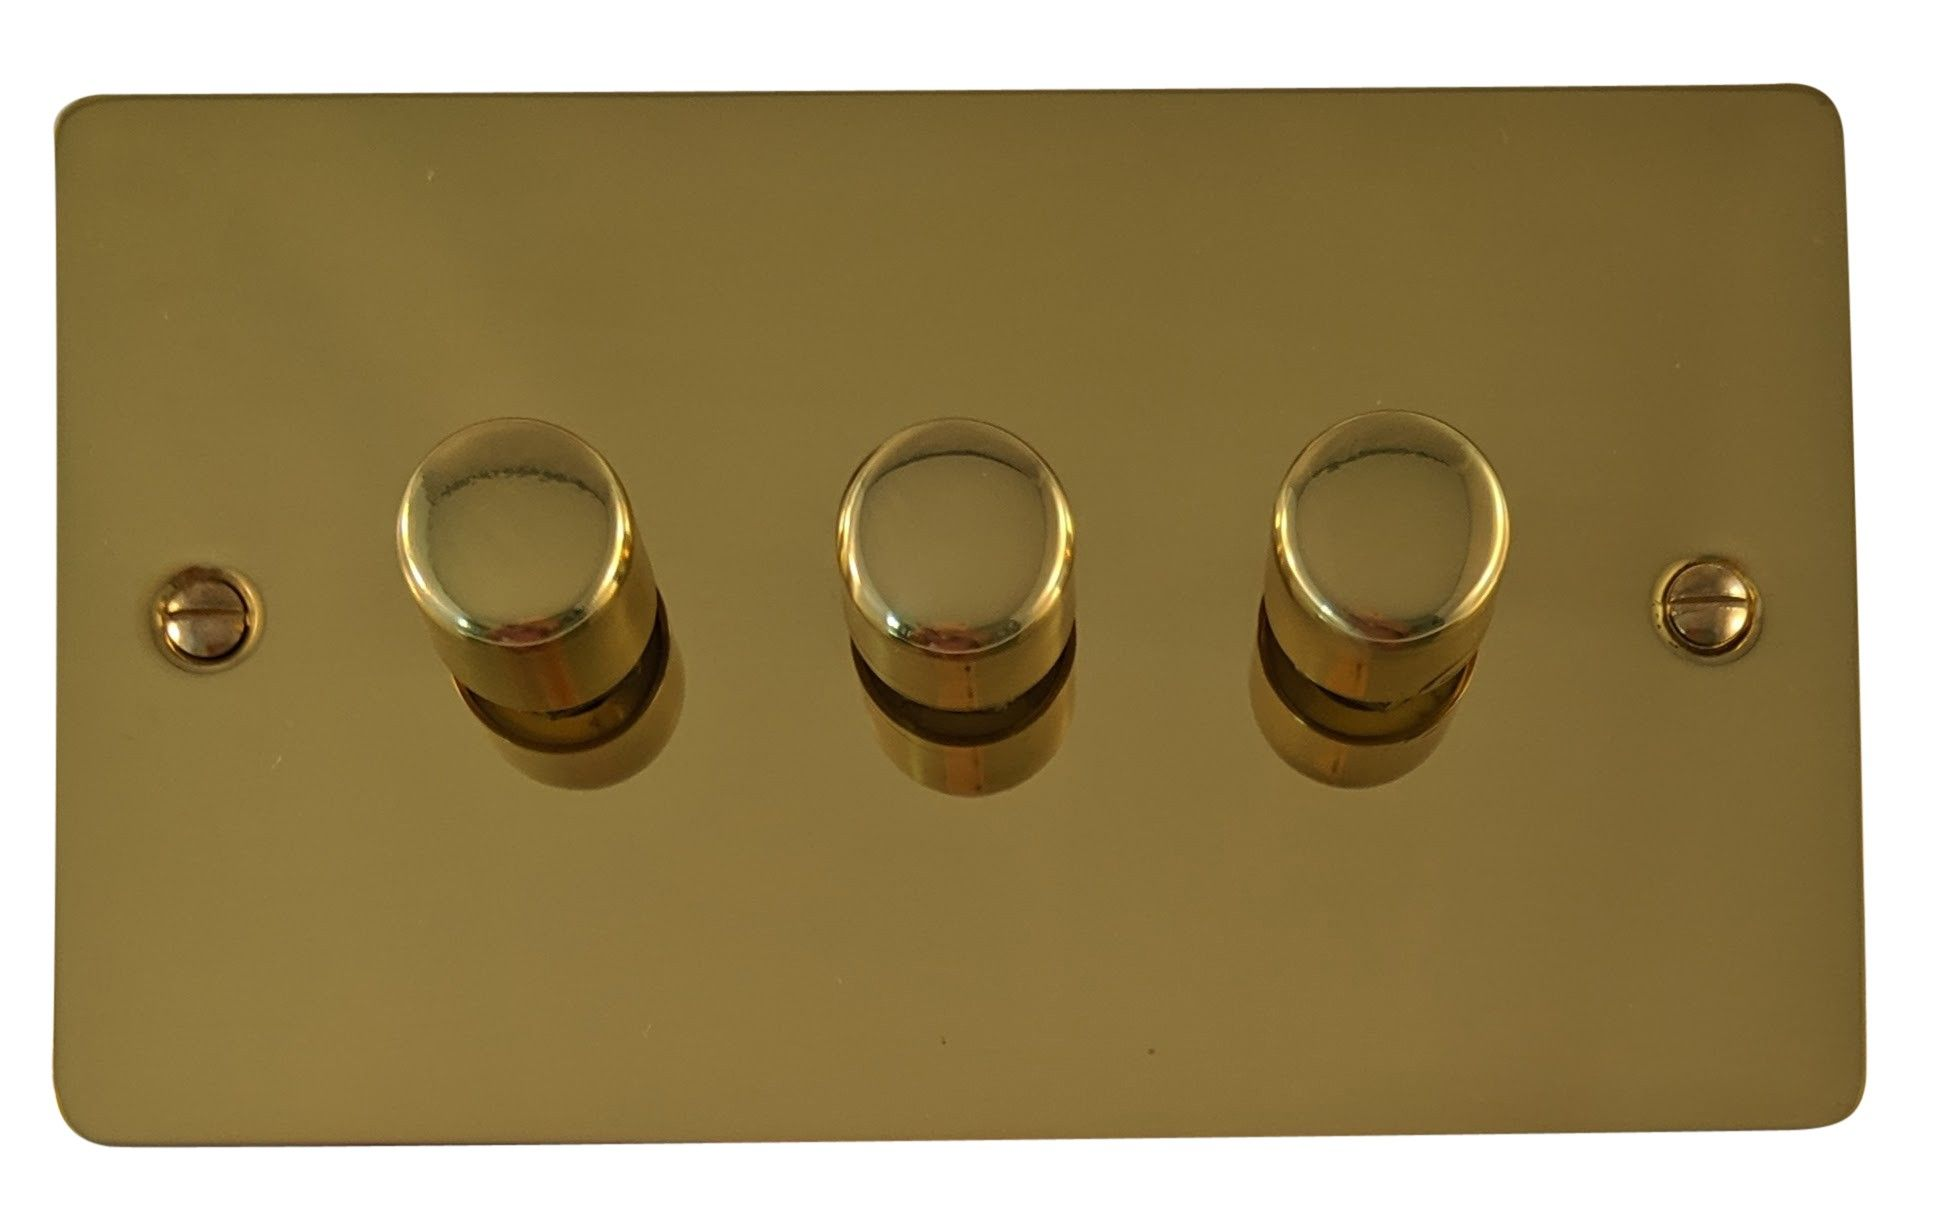 G&H FB13 Flat Plate Polished Brass 3 Gang 1 or 2 Way 40-400W Dimmer Switch